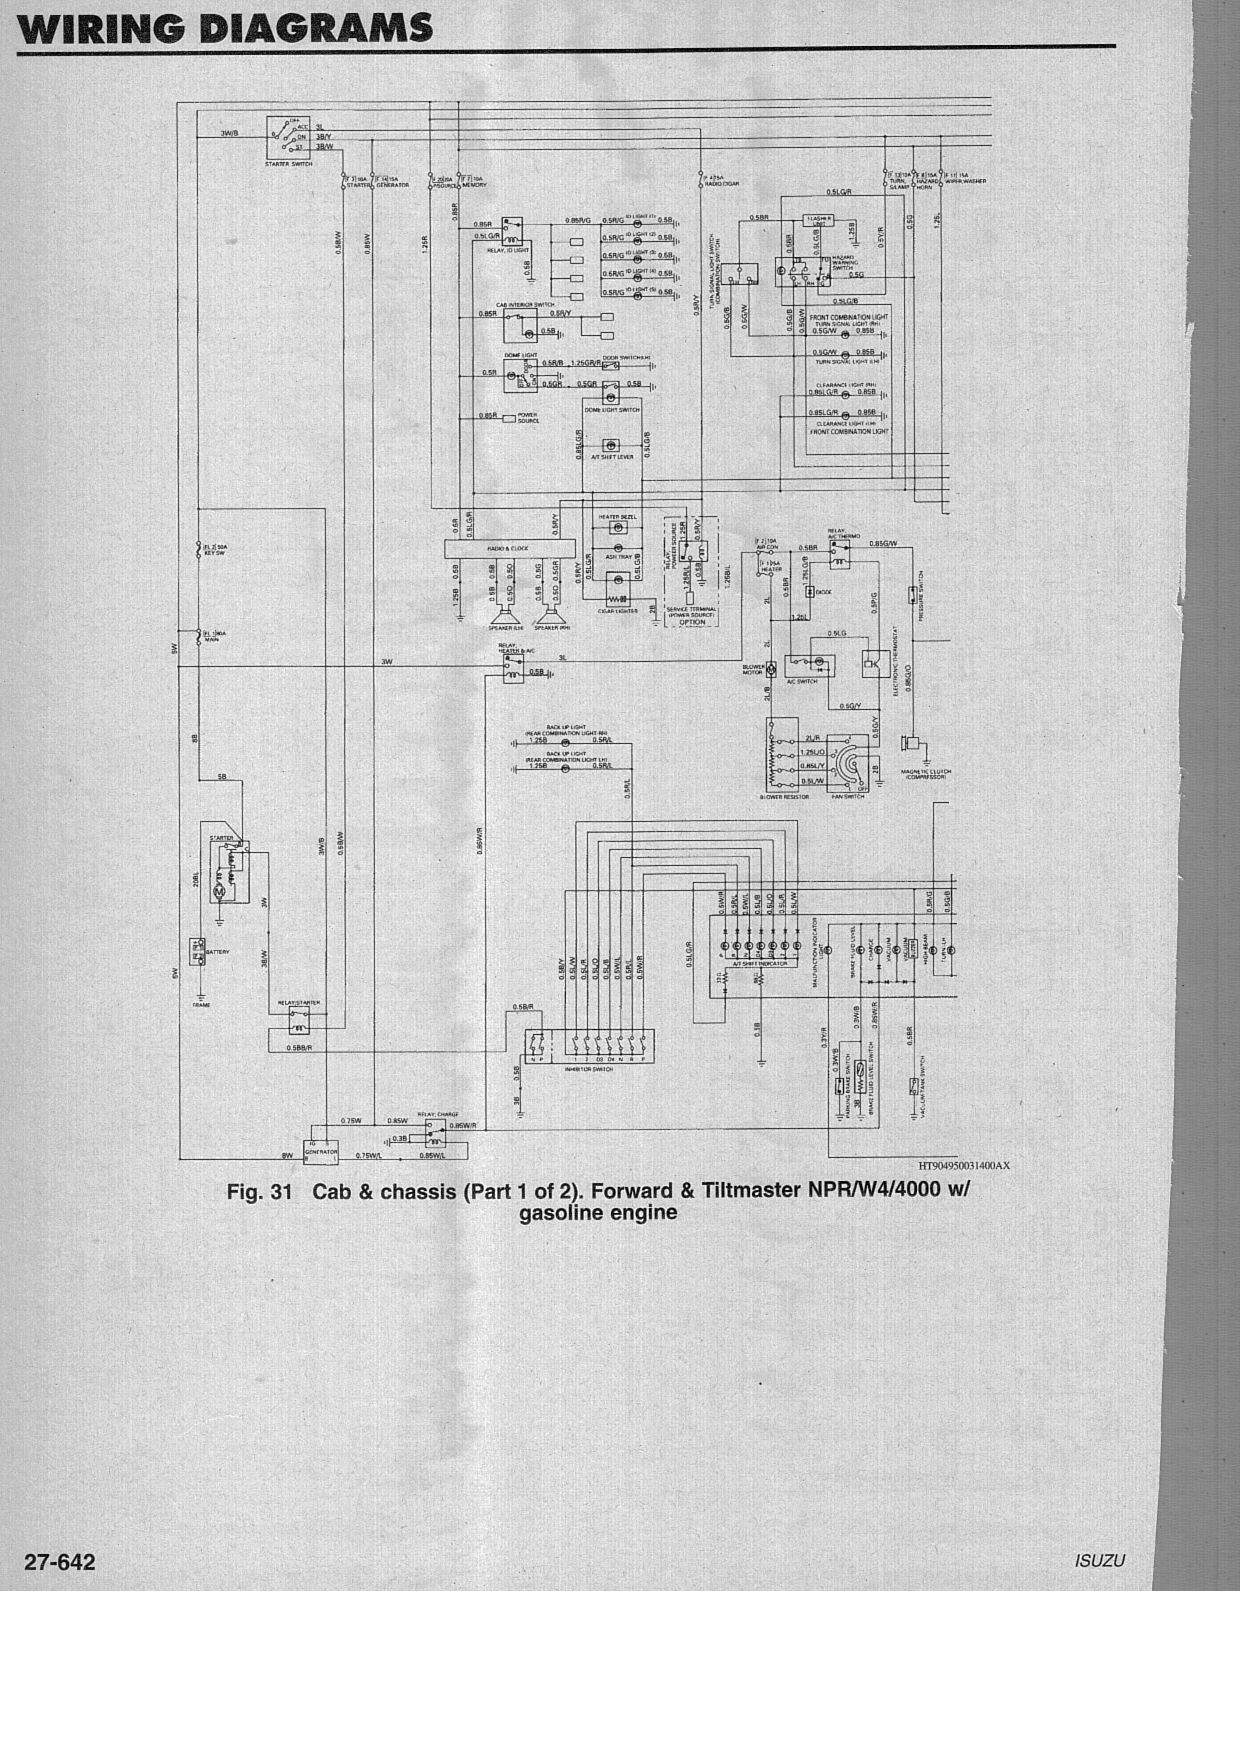 2009 06 21_140331_Isuzu_npr_gas_wiring_pg1 wiring diagrams gm isuzu 1995 1 2 w4 4000 npr (gasoline) 1995 isuzu npr wiring diagram at readyjetset.co